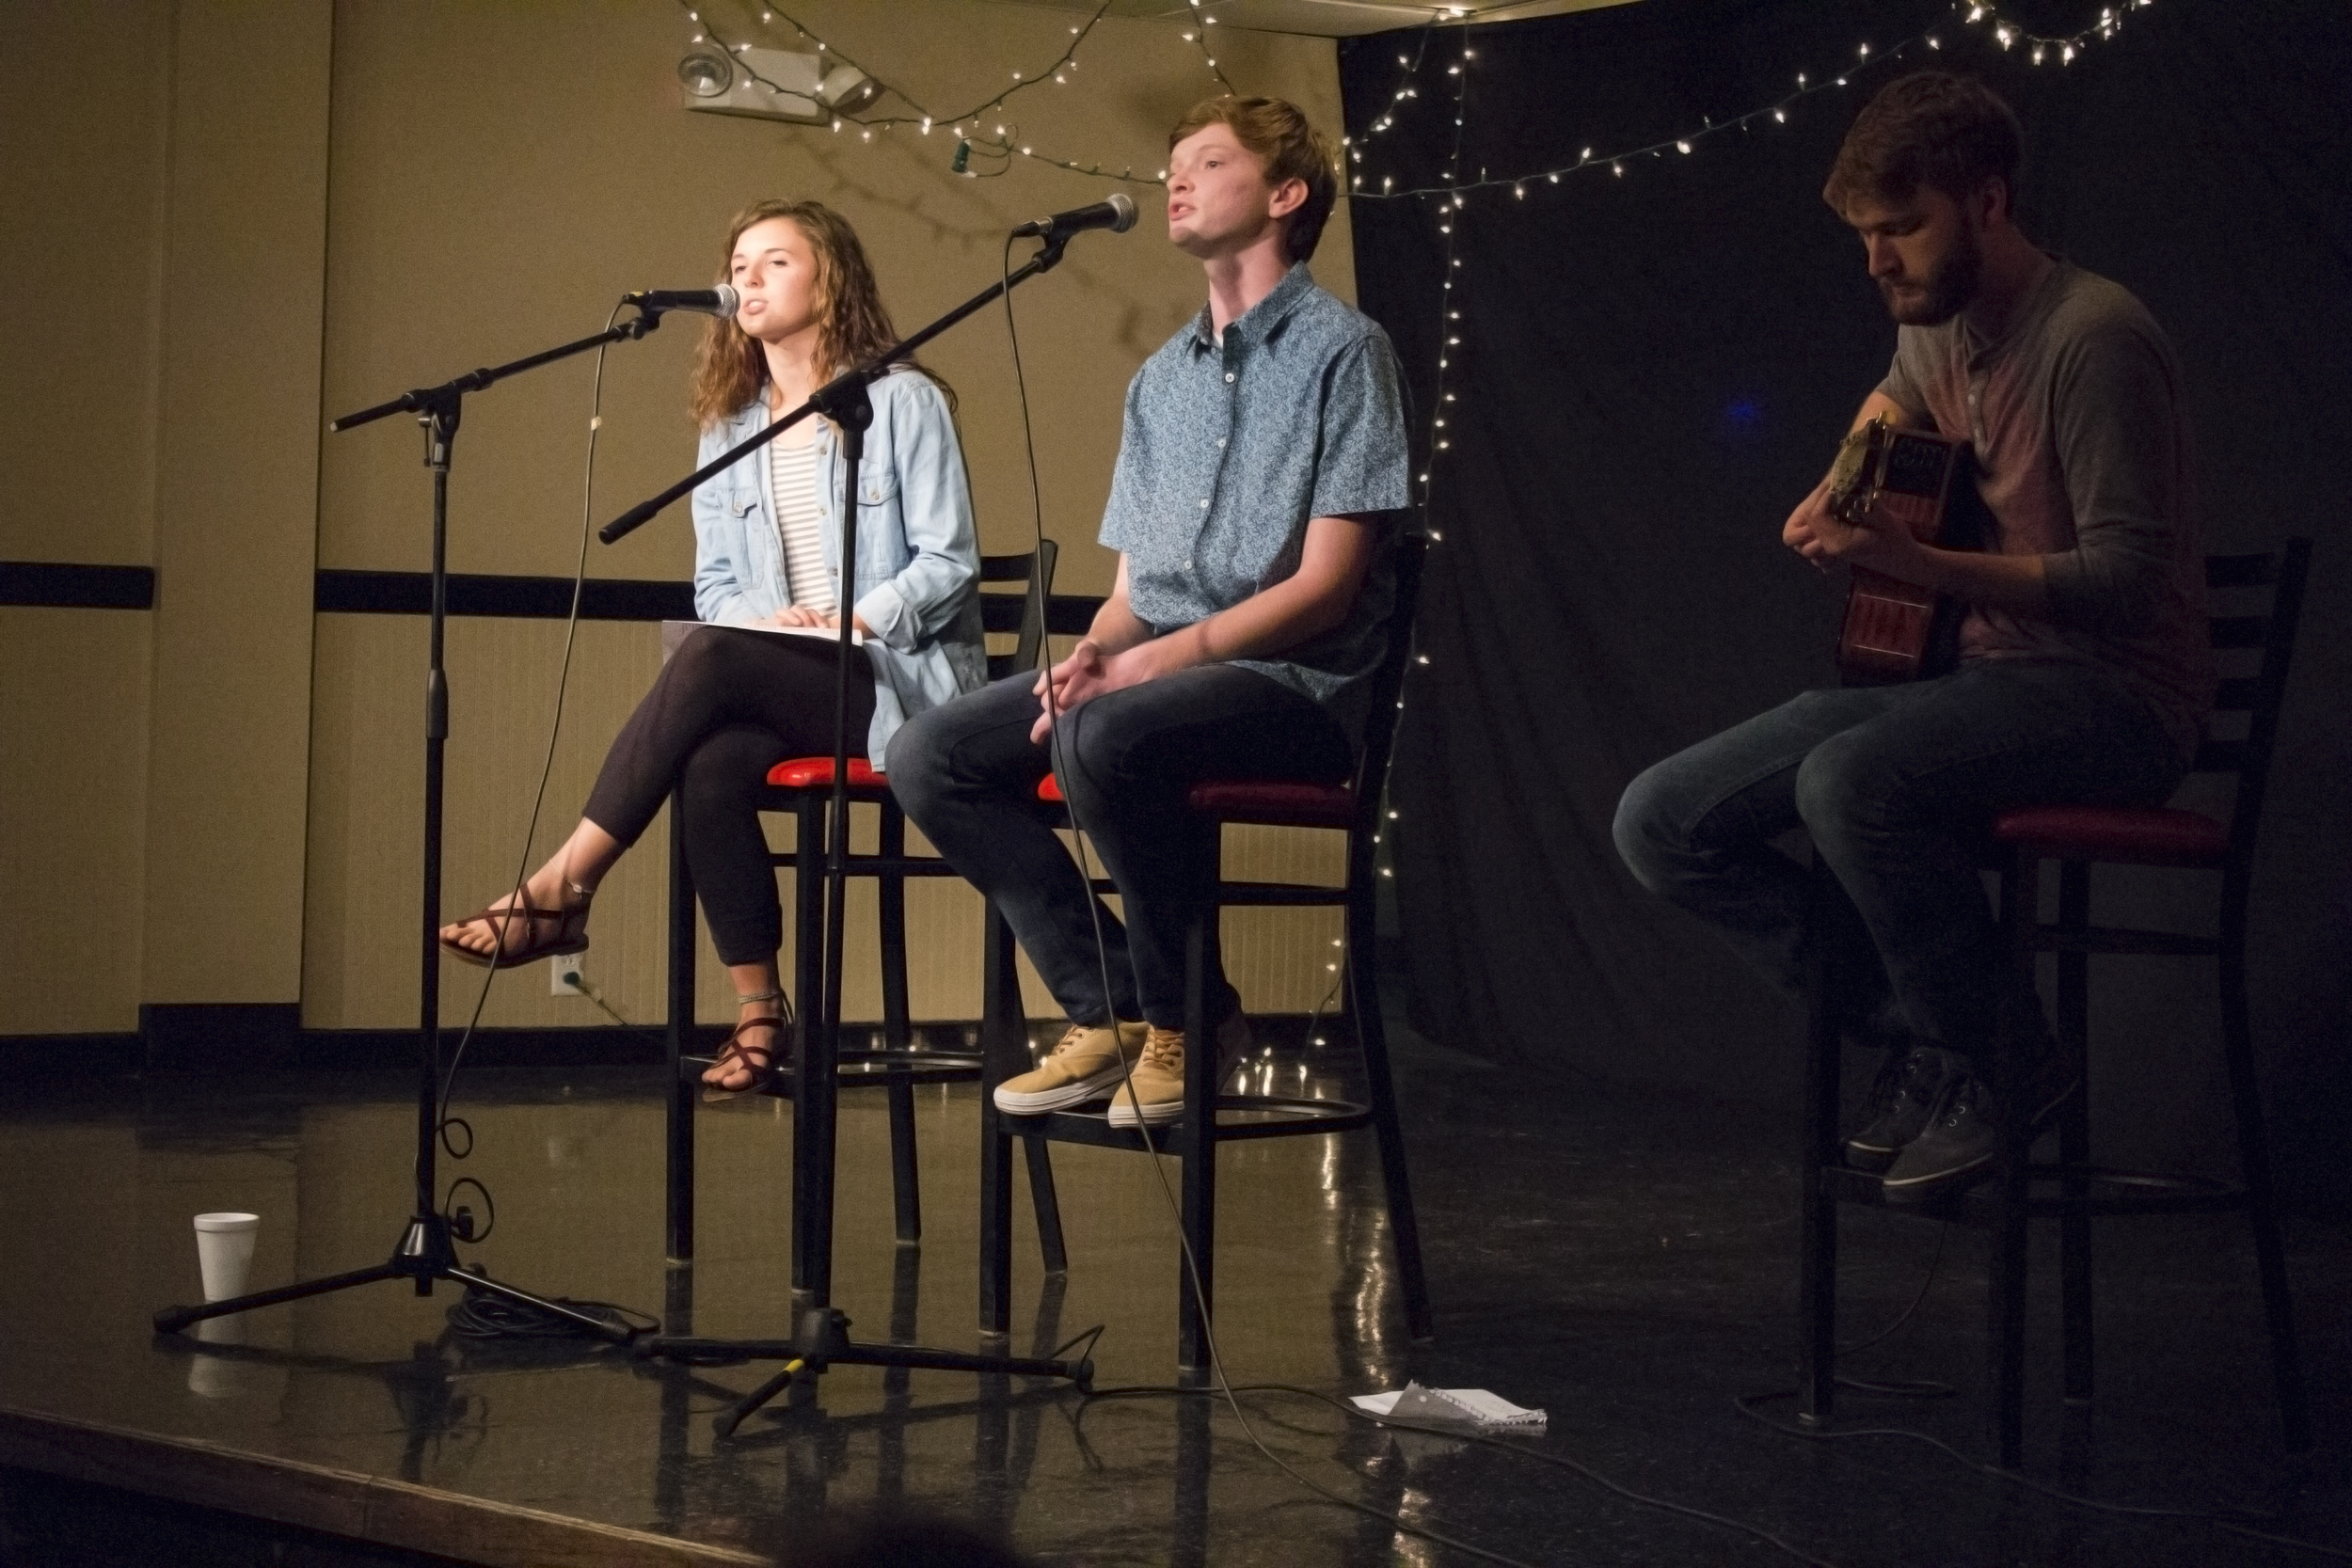 Collin Dale,Hannah Squire and Hudson Tankersley won best performance of the night.